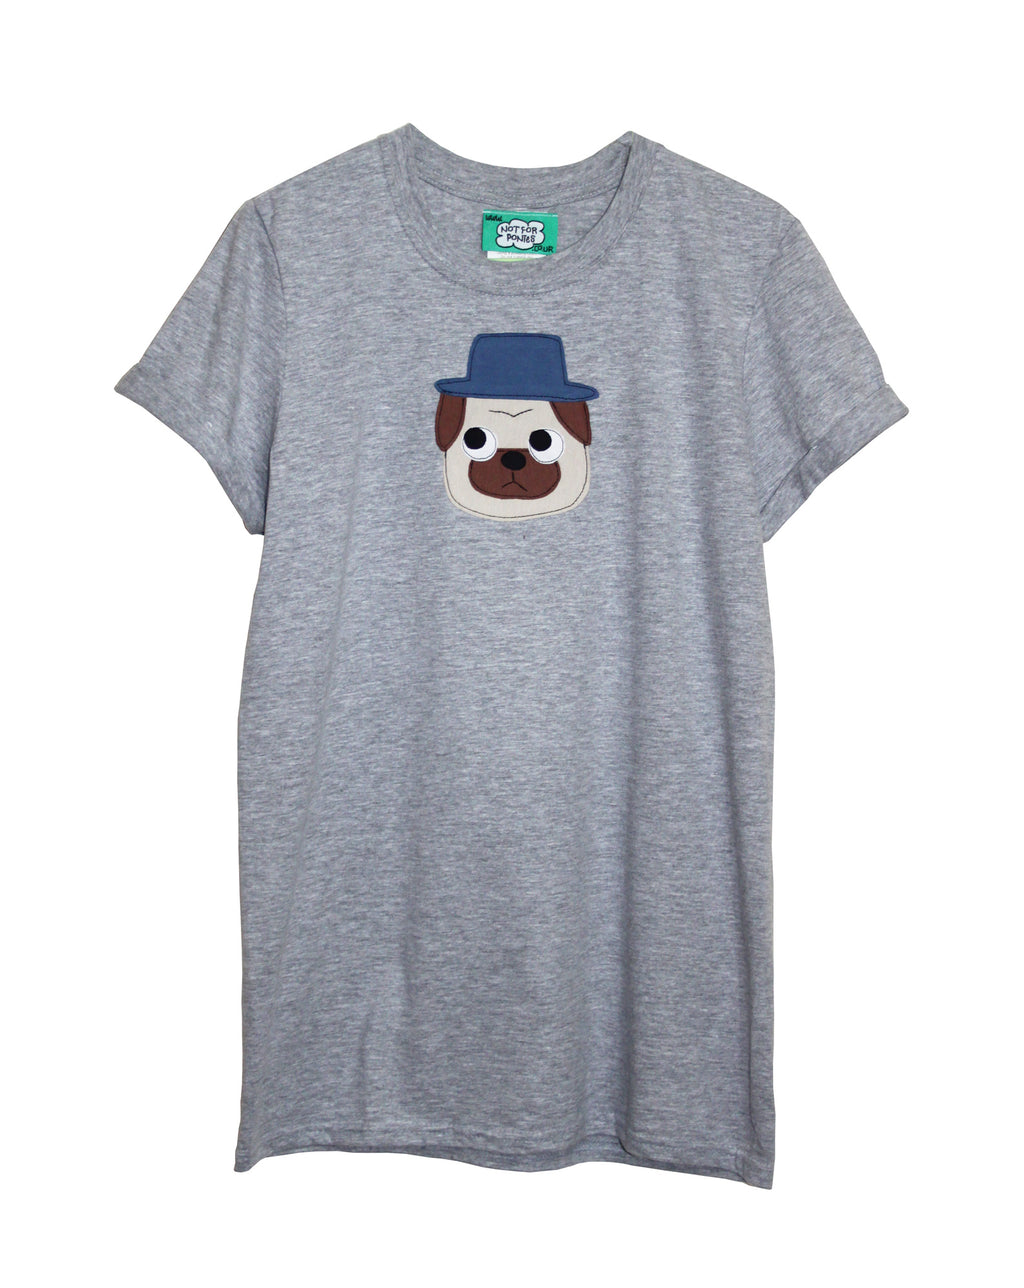 Women's Grey Pug T Shirt by Not For Ponies